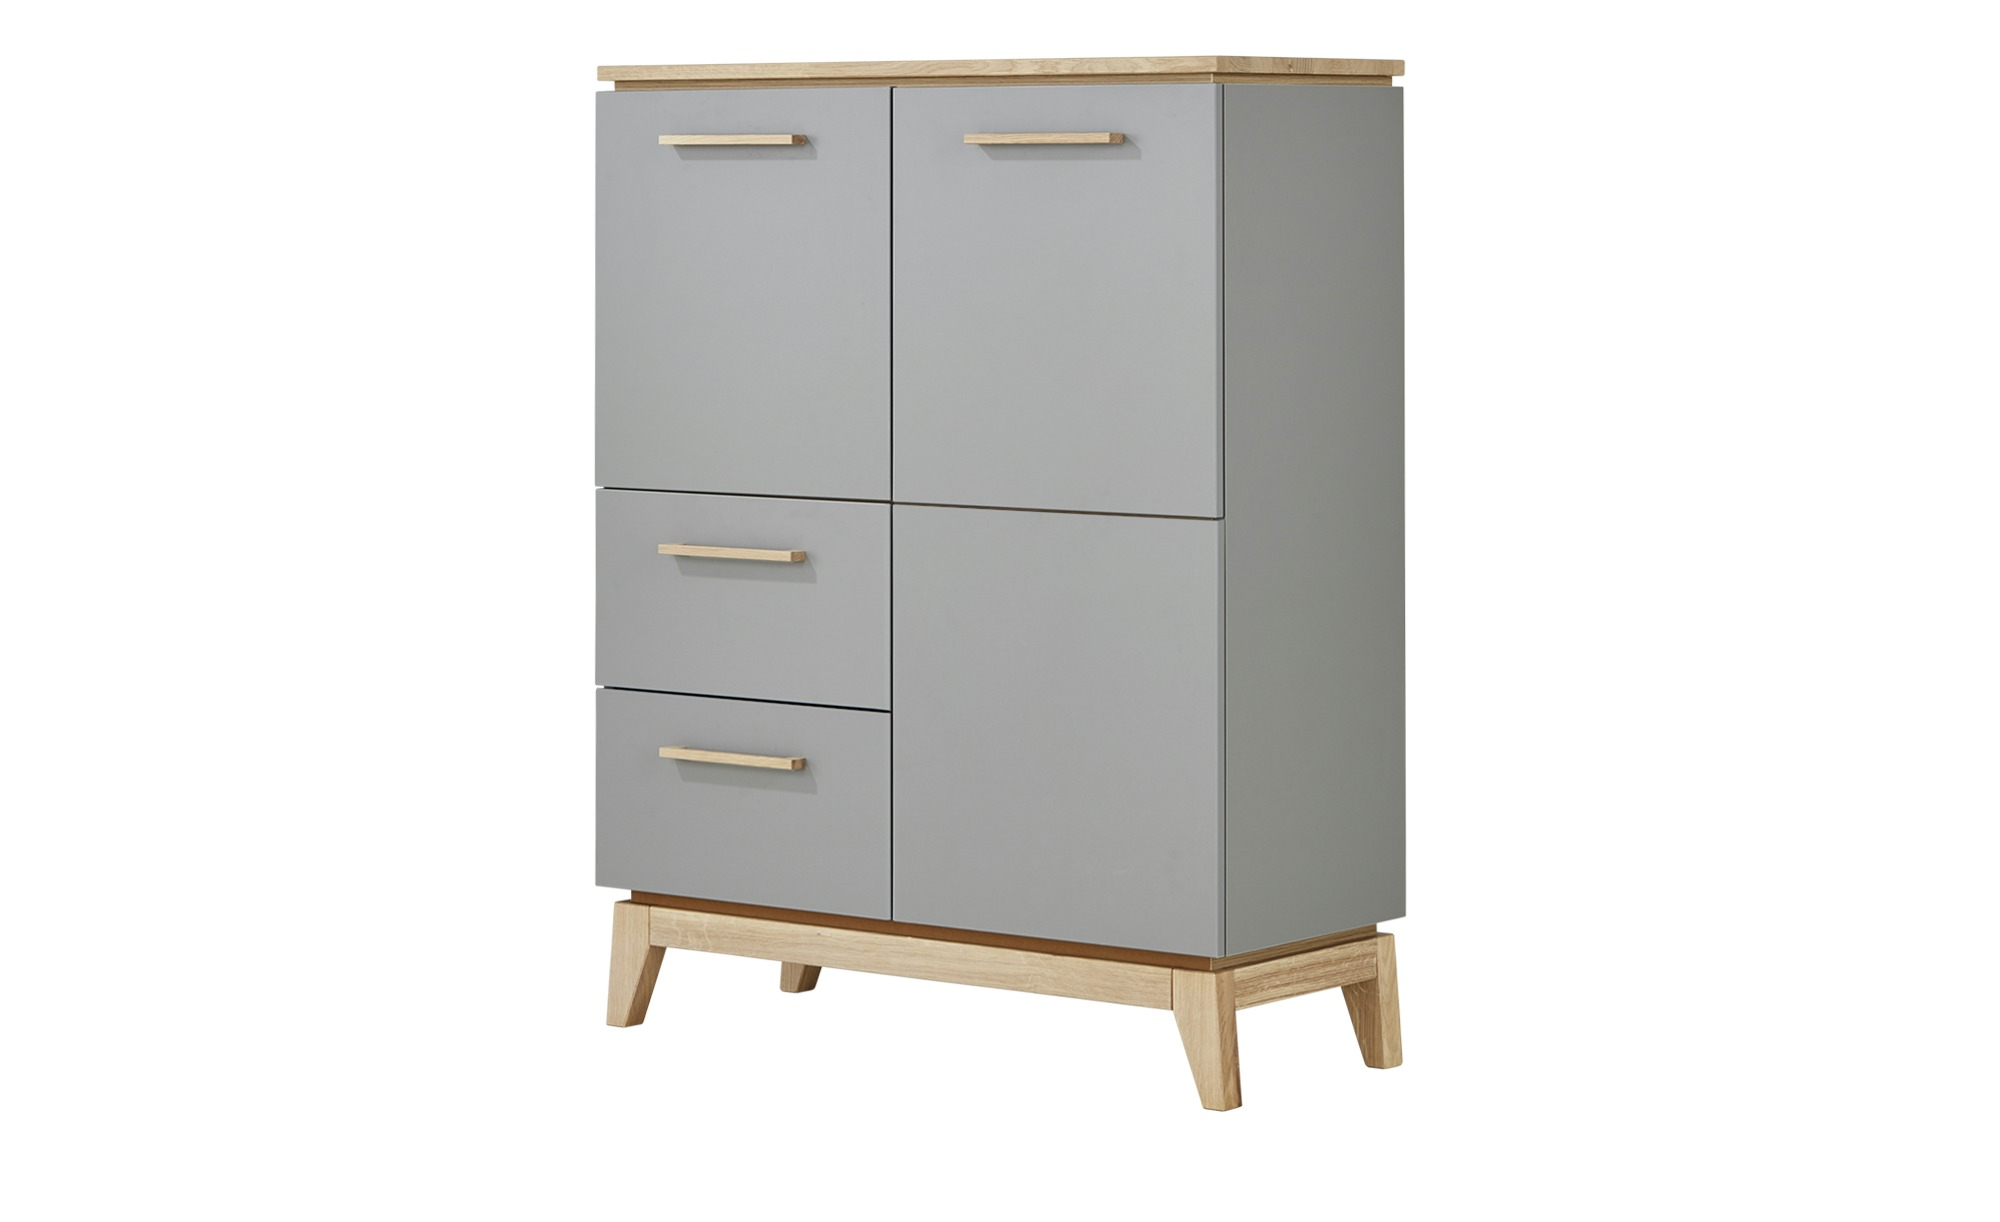 PAIDI Highboard  Sten ¦ grau ¦ Maße (cm): B: 94,6 H: 123,2 T: 39,3 Kommoden & Sideboards > Highboards - Höffner